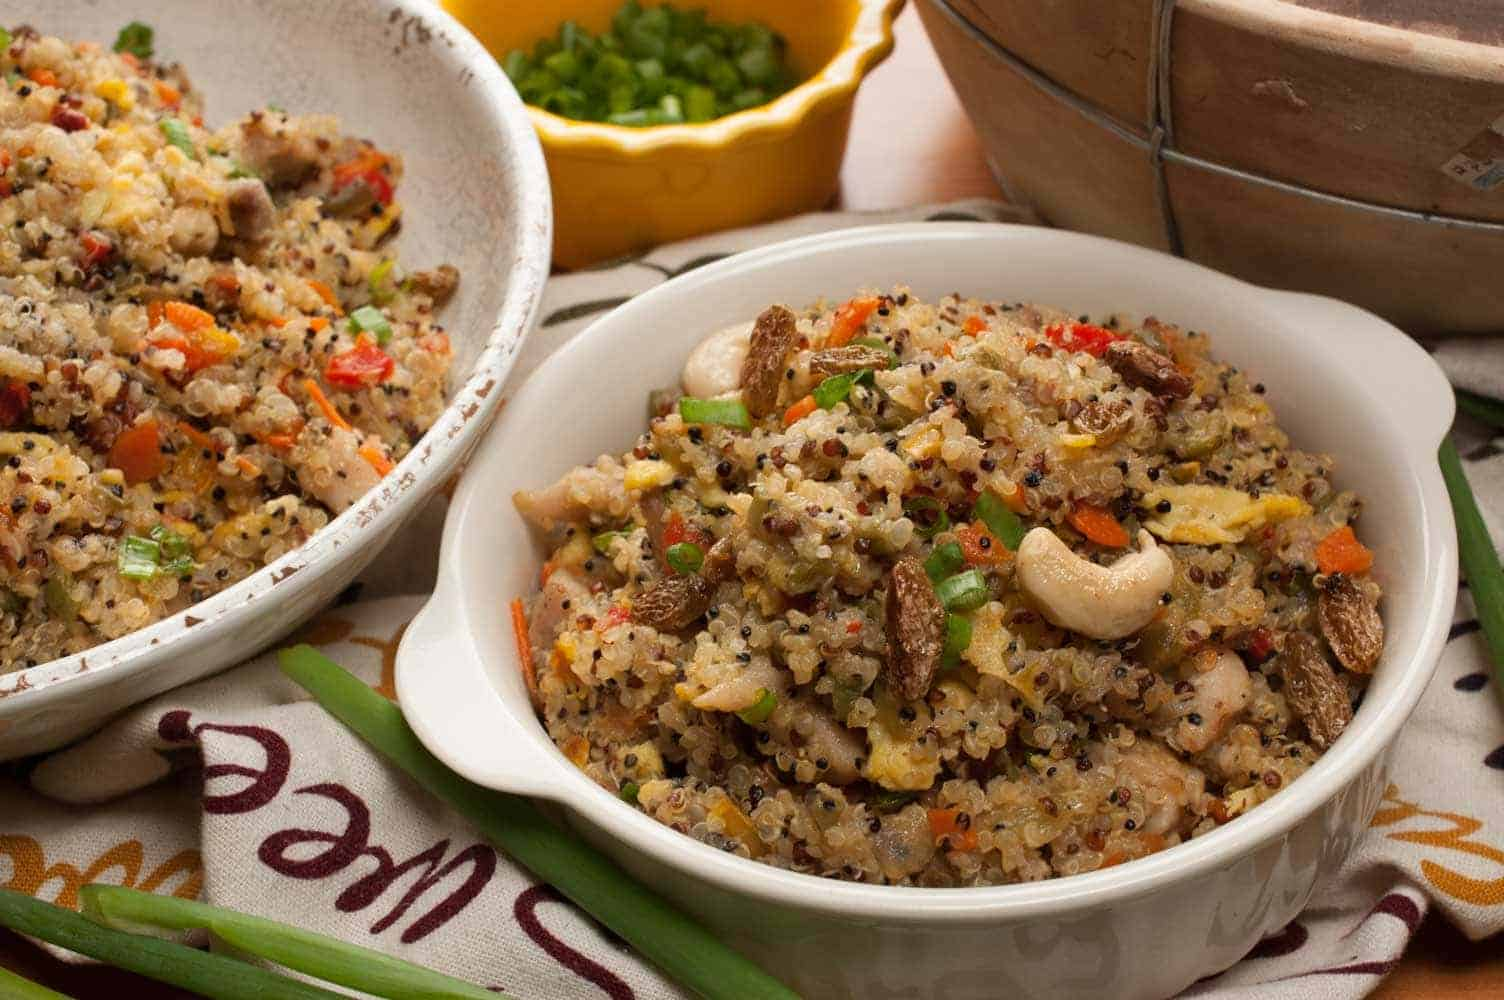 Quinoa Stir Fry with Chicken And Vegetables